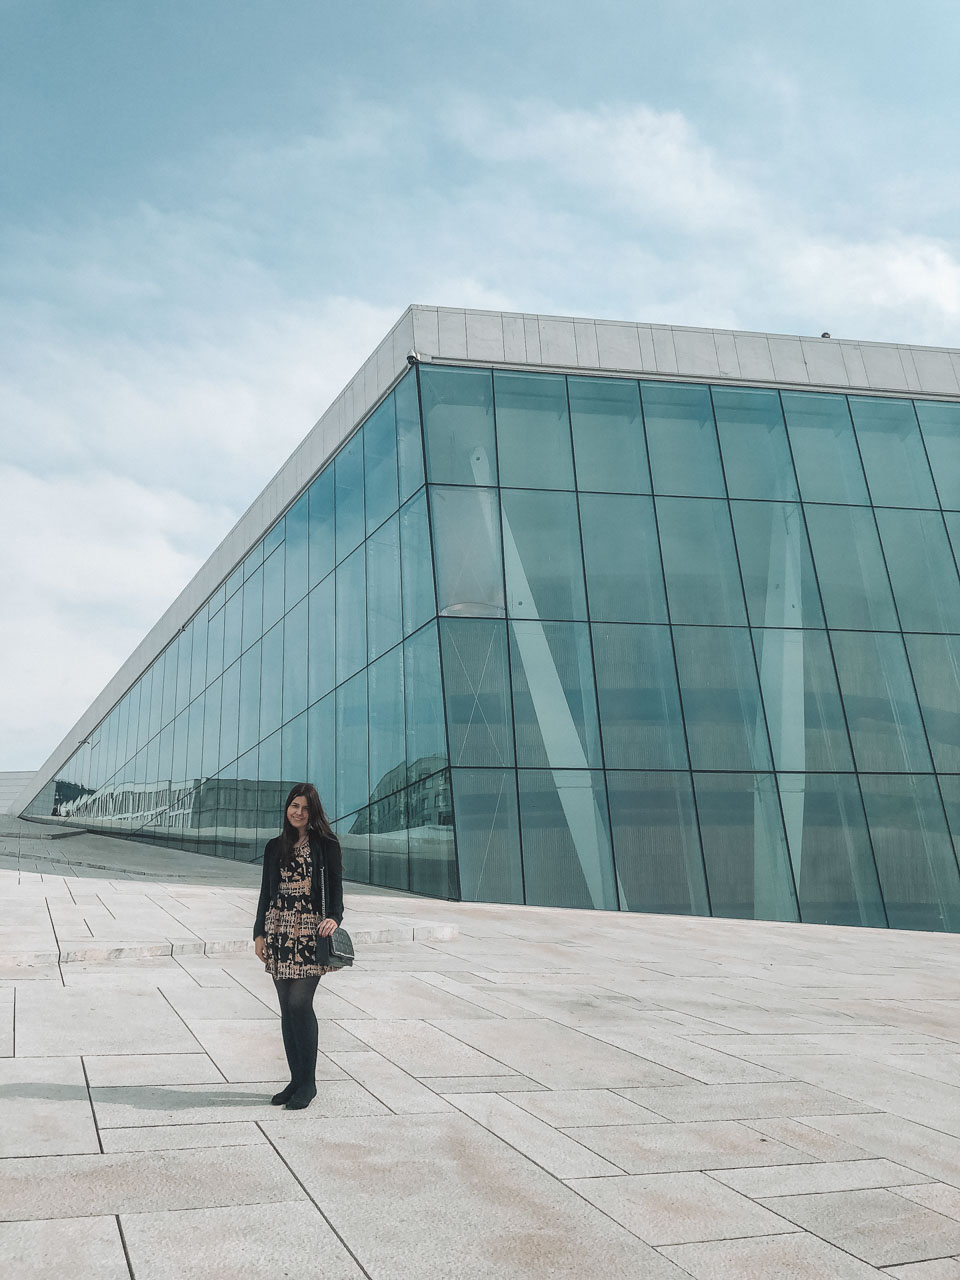 A girl standing by The Norwegian National Opera & Ballet in Oslo, Norway